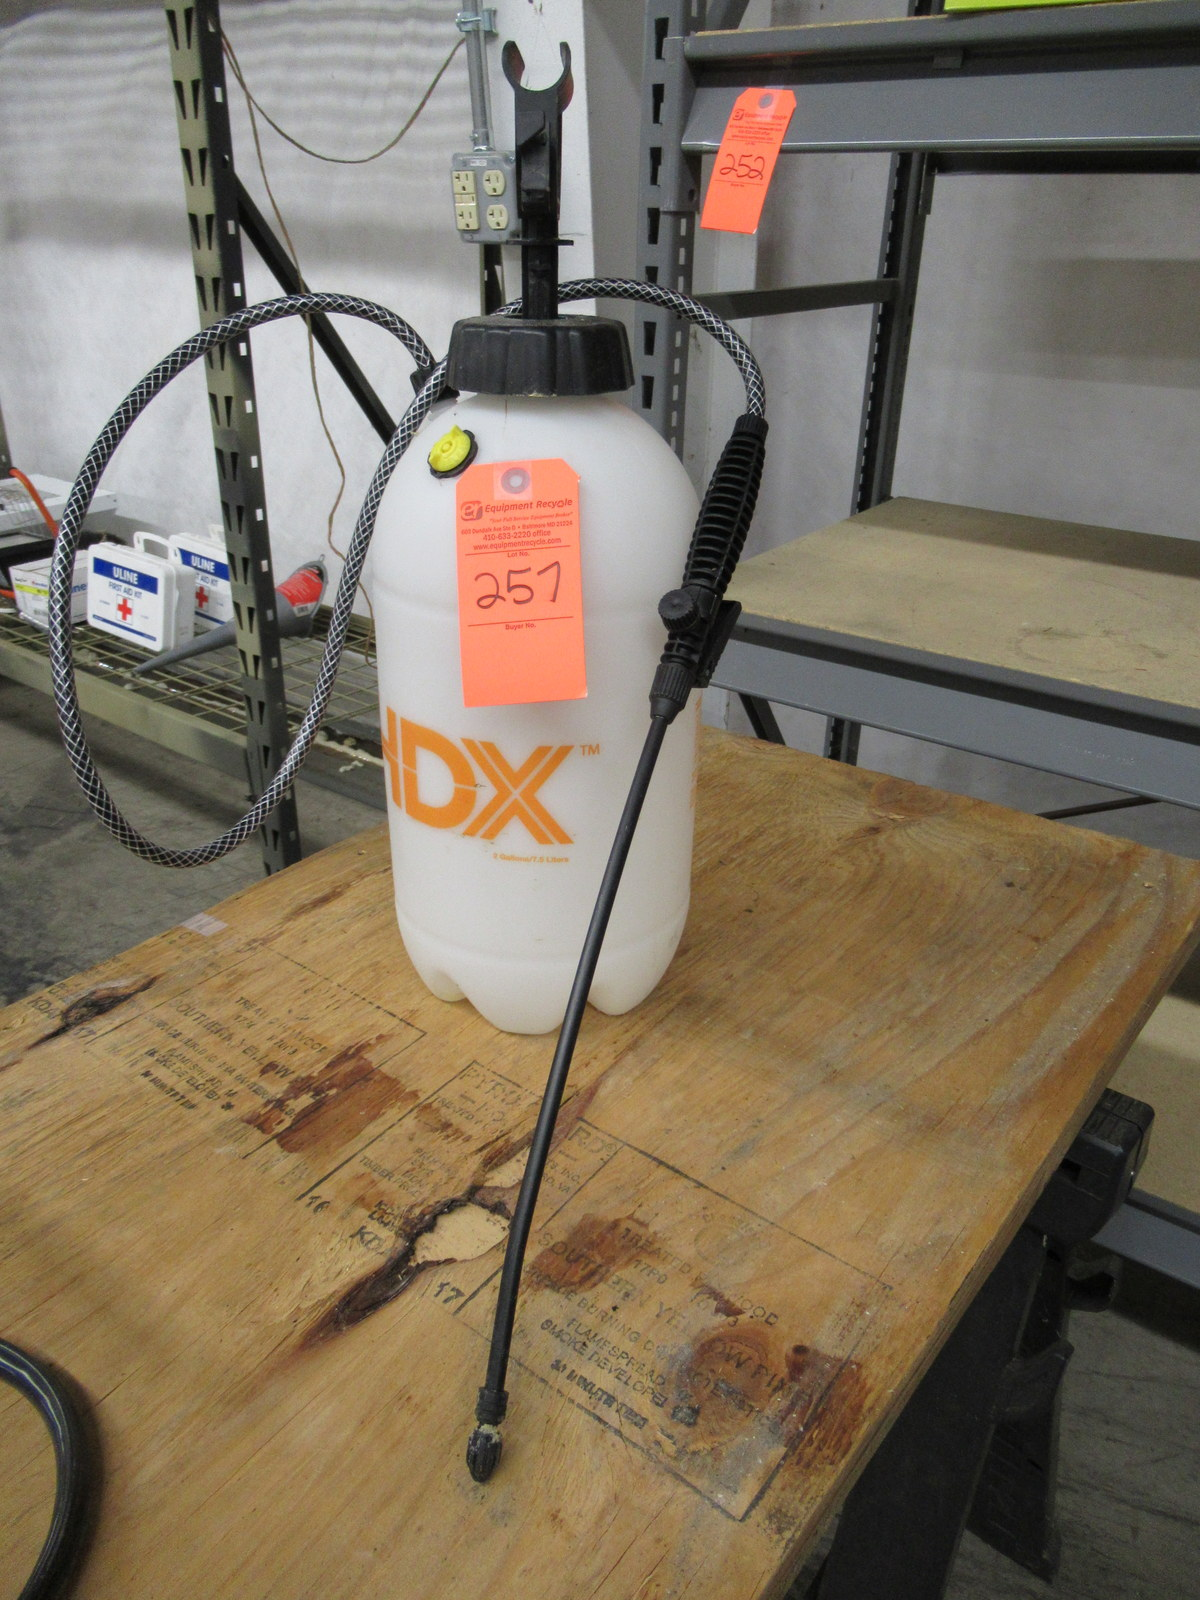 Lot 257 - HDX Multi-Purpose 2 Gallon Sprayer